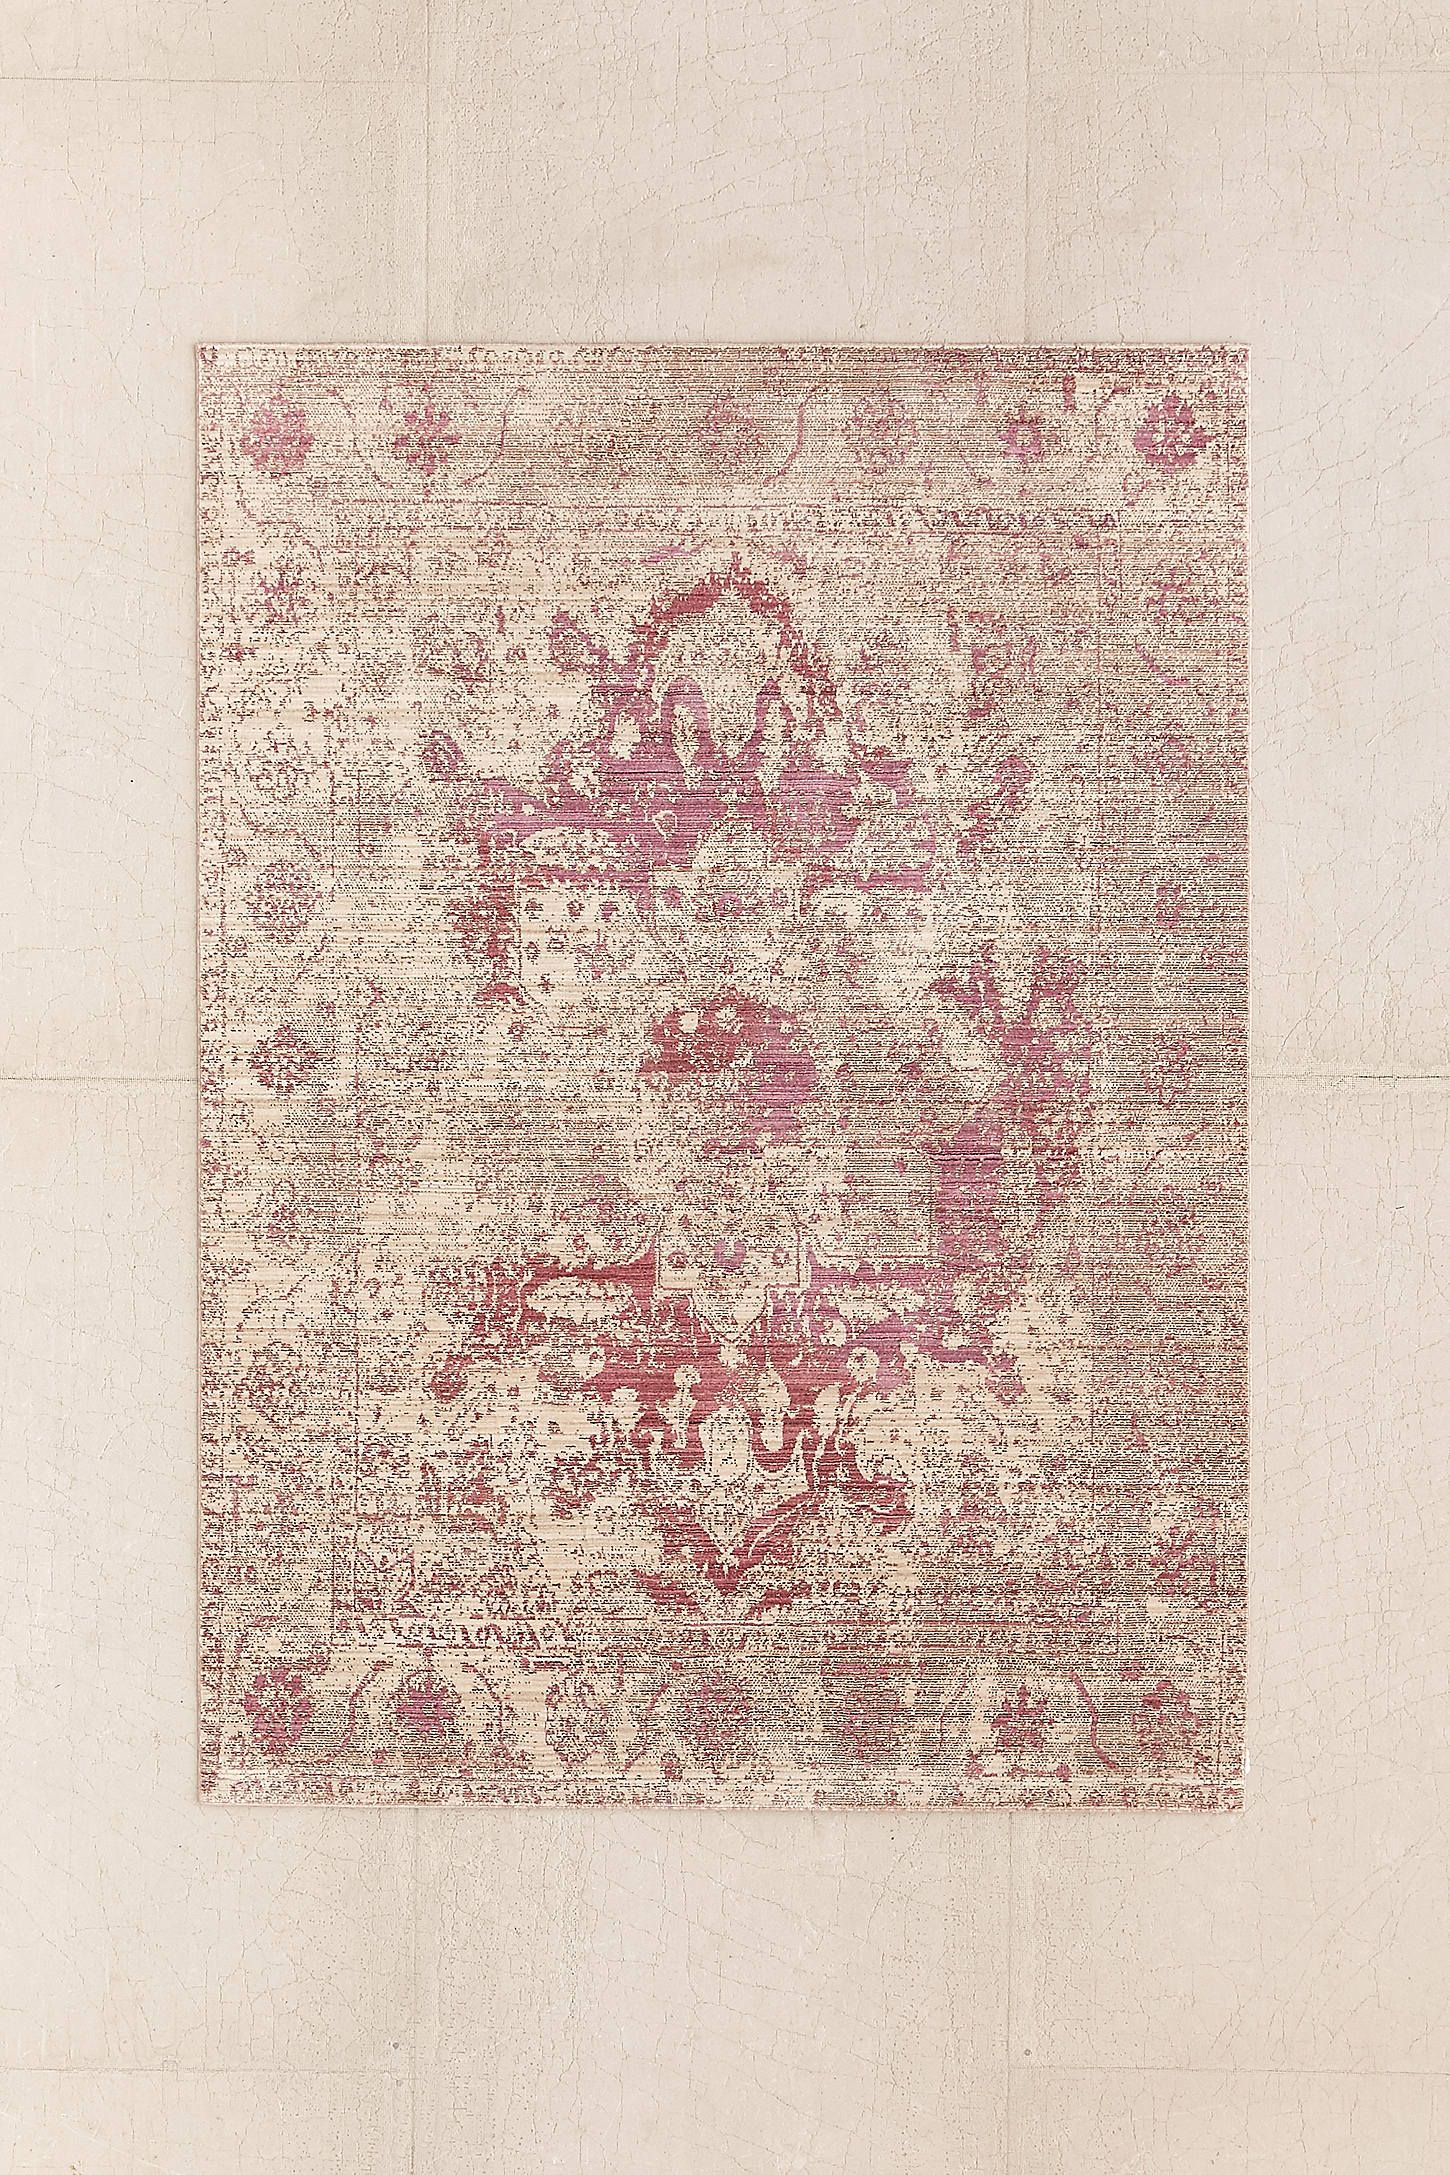 Louisa Worn Woven Rug | Best House stairs, Bedrooms and Interiors ideas